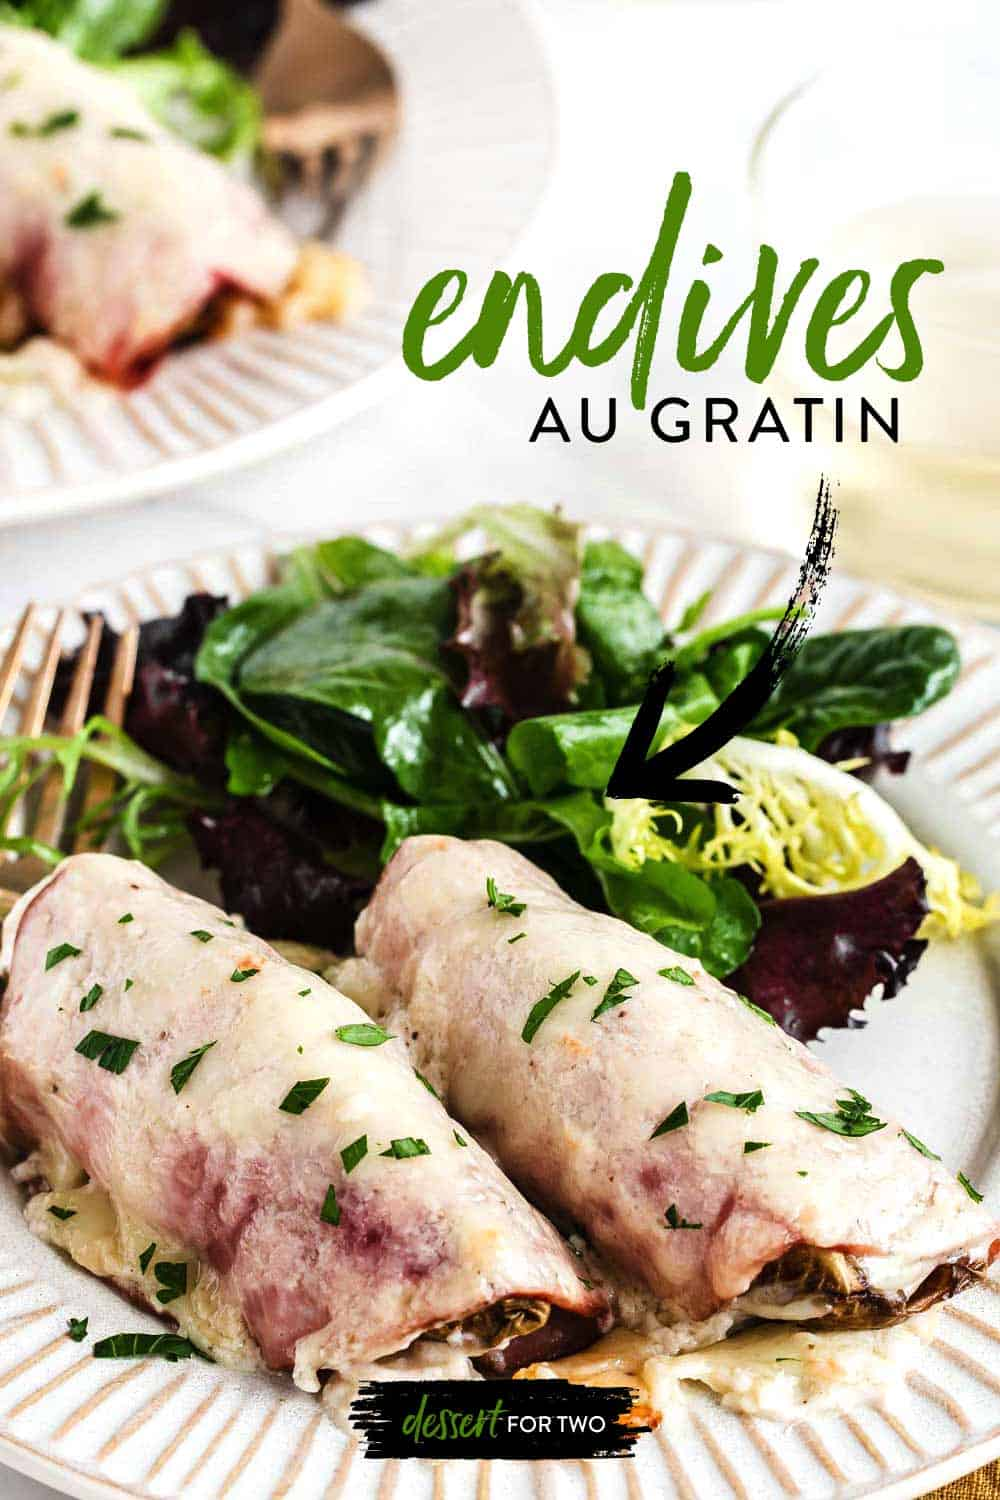 Two endives au gratin on white plate with salad mix.